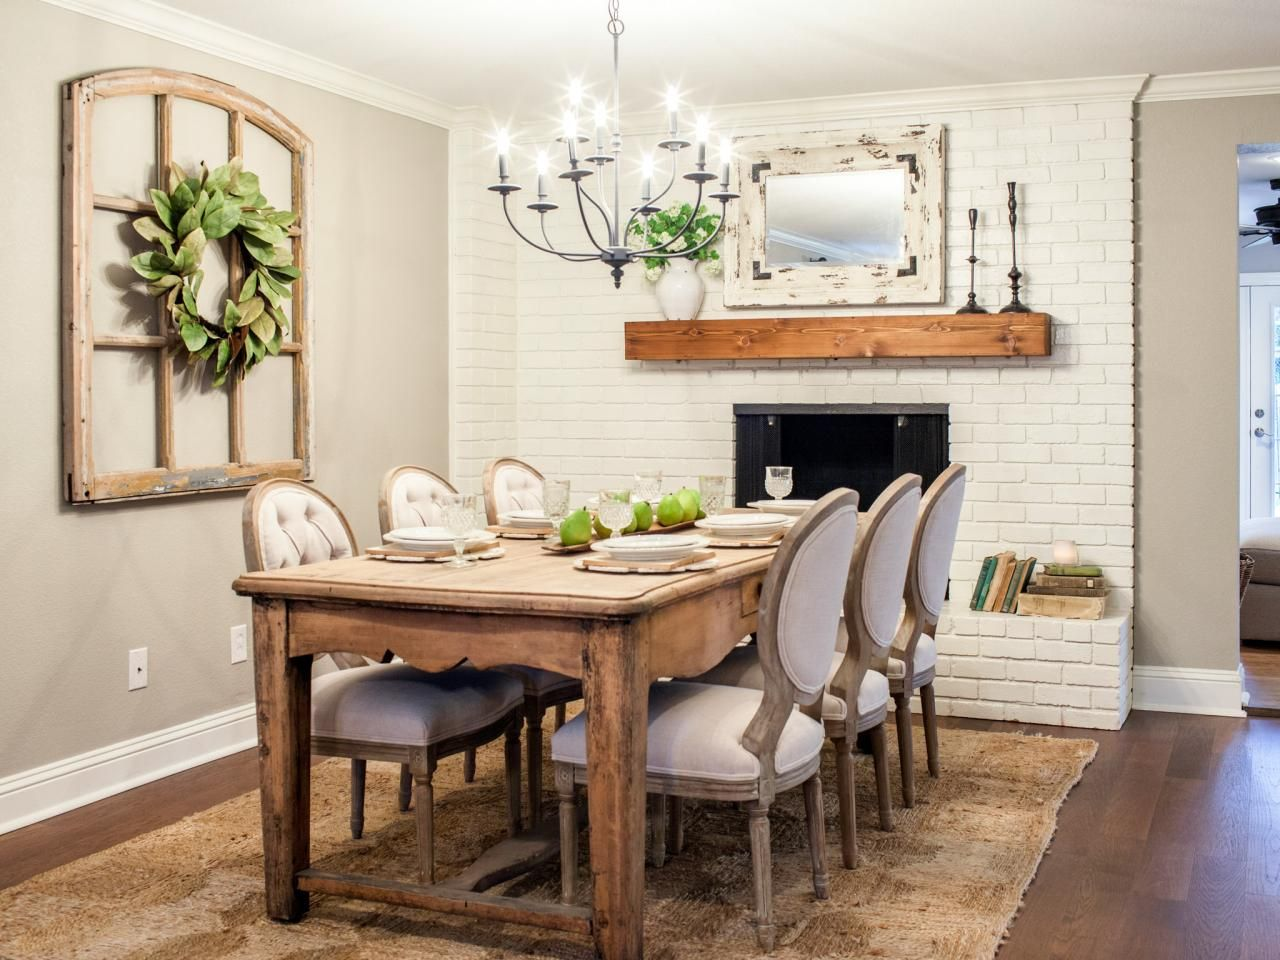 Living Rooms Decorated By Joanna Gaines Room Chair And Ottoman Set Wall Ideas 10 15 Hus Noorderpad De 30 Signs You Re A Fixer Upper Fanatic Decor Farmhouse Rh Pinterest Com Home Furniture